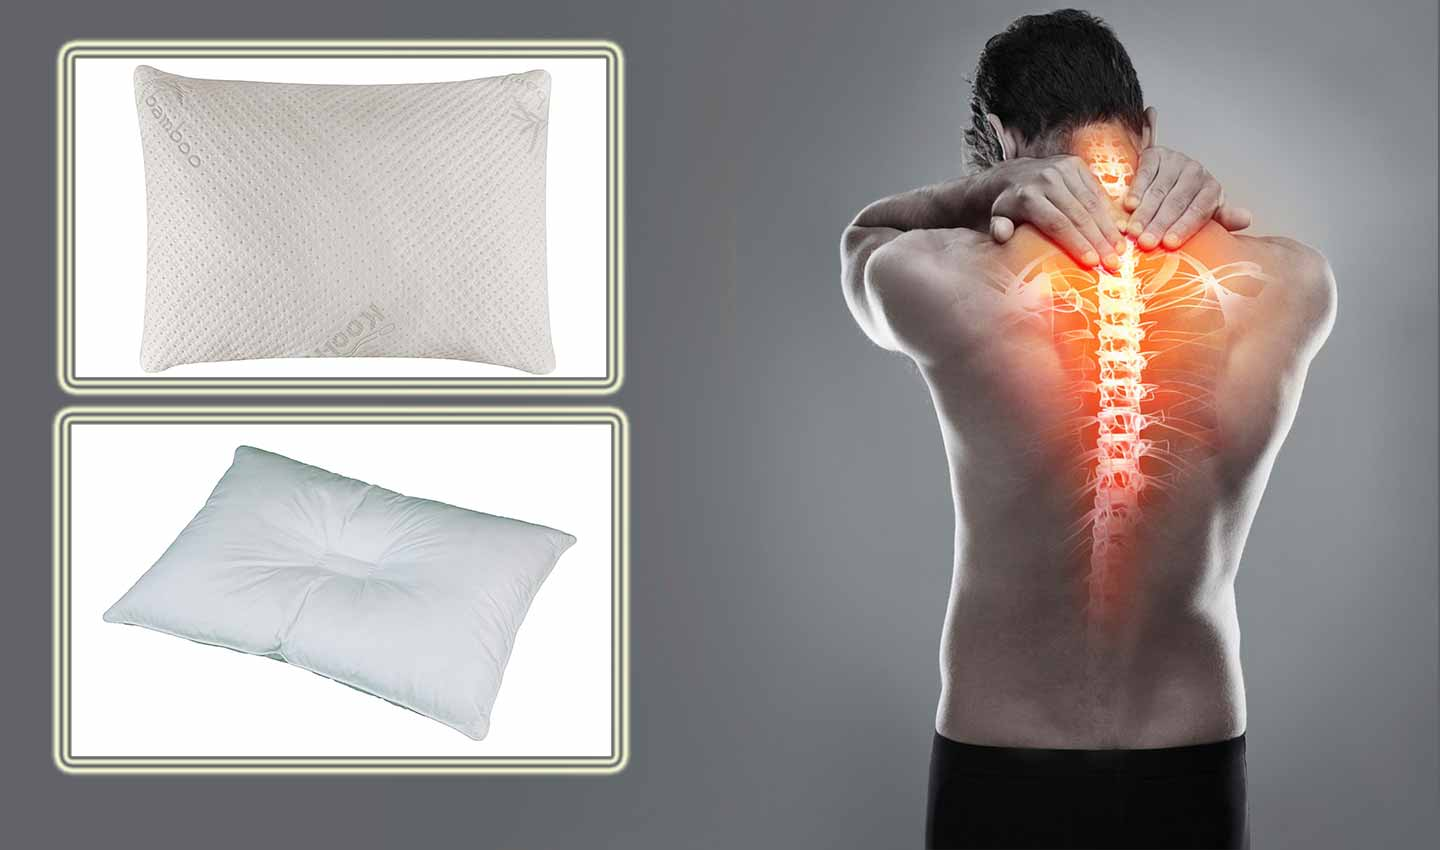 Best Pillow For Sleeping On Your Back The 10 Best Pillows For Back Pain Relief Updated 2019